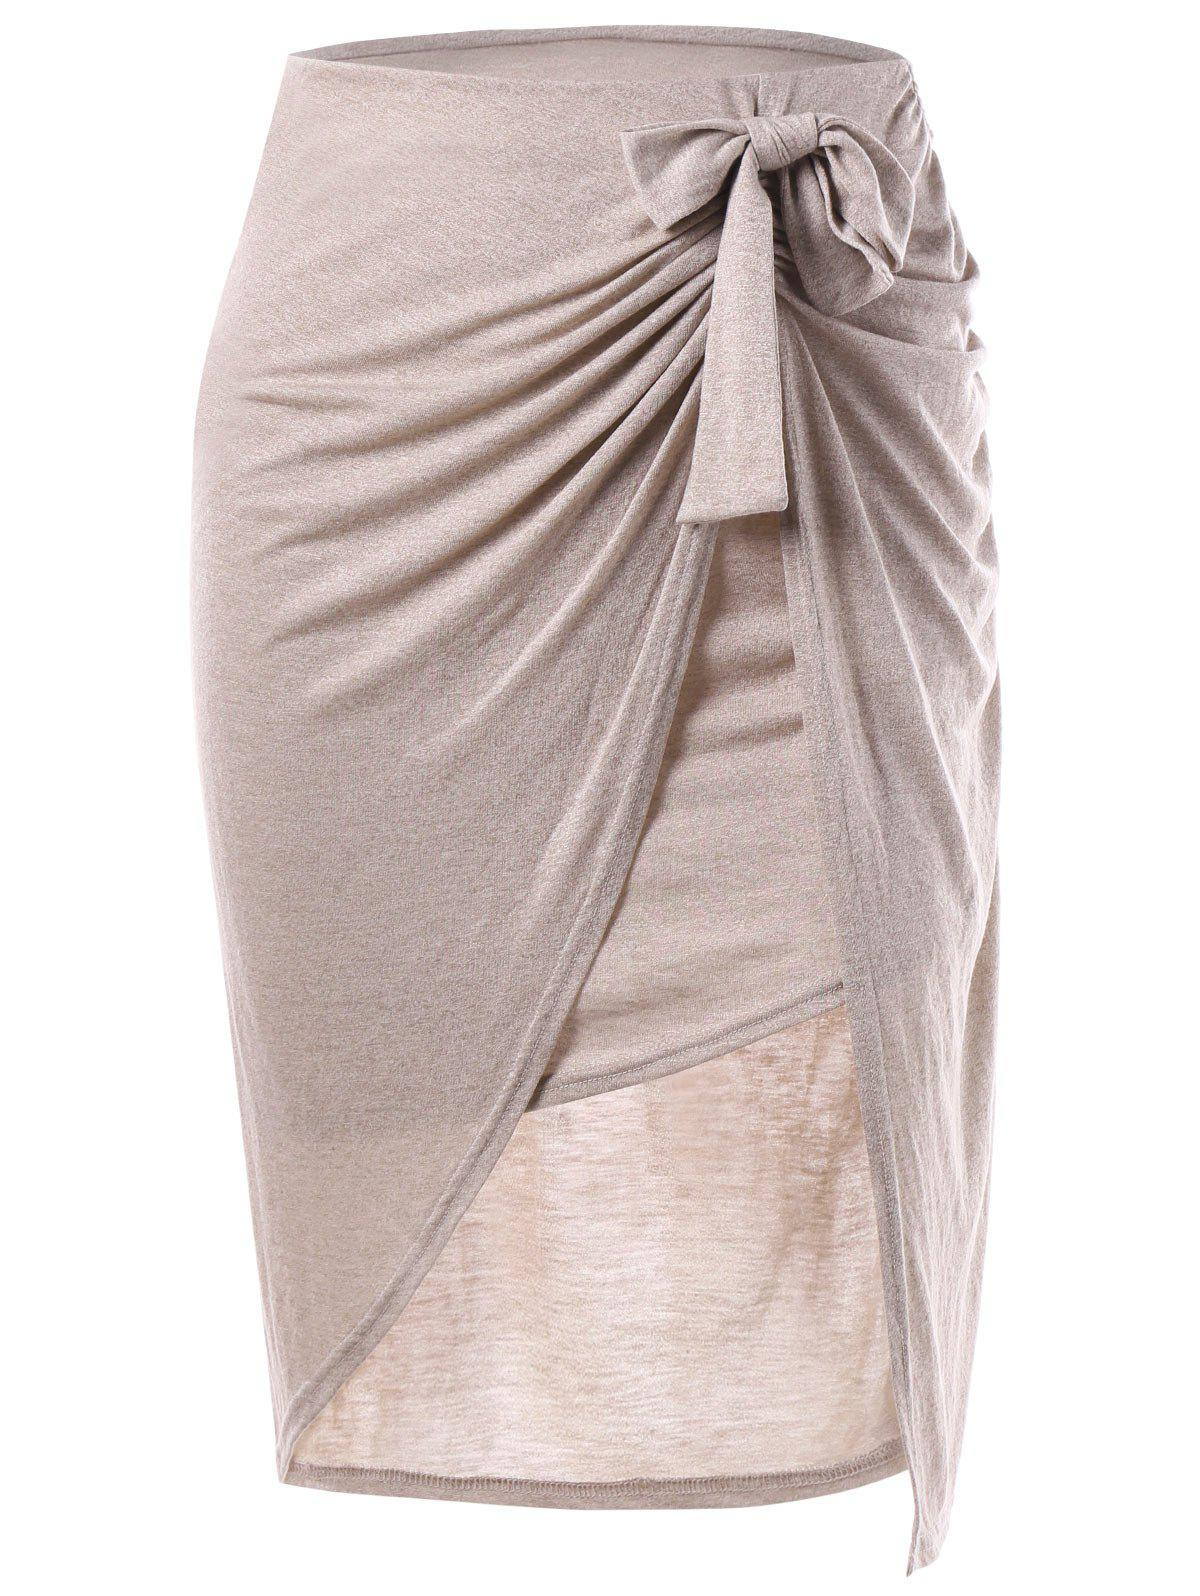 Bowknot Slit Draped Skirt - YELLOWISH PINK XL